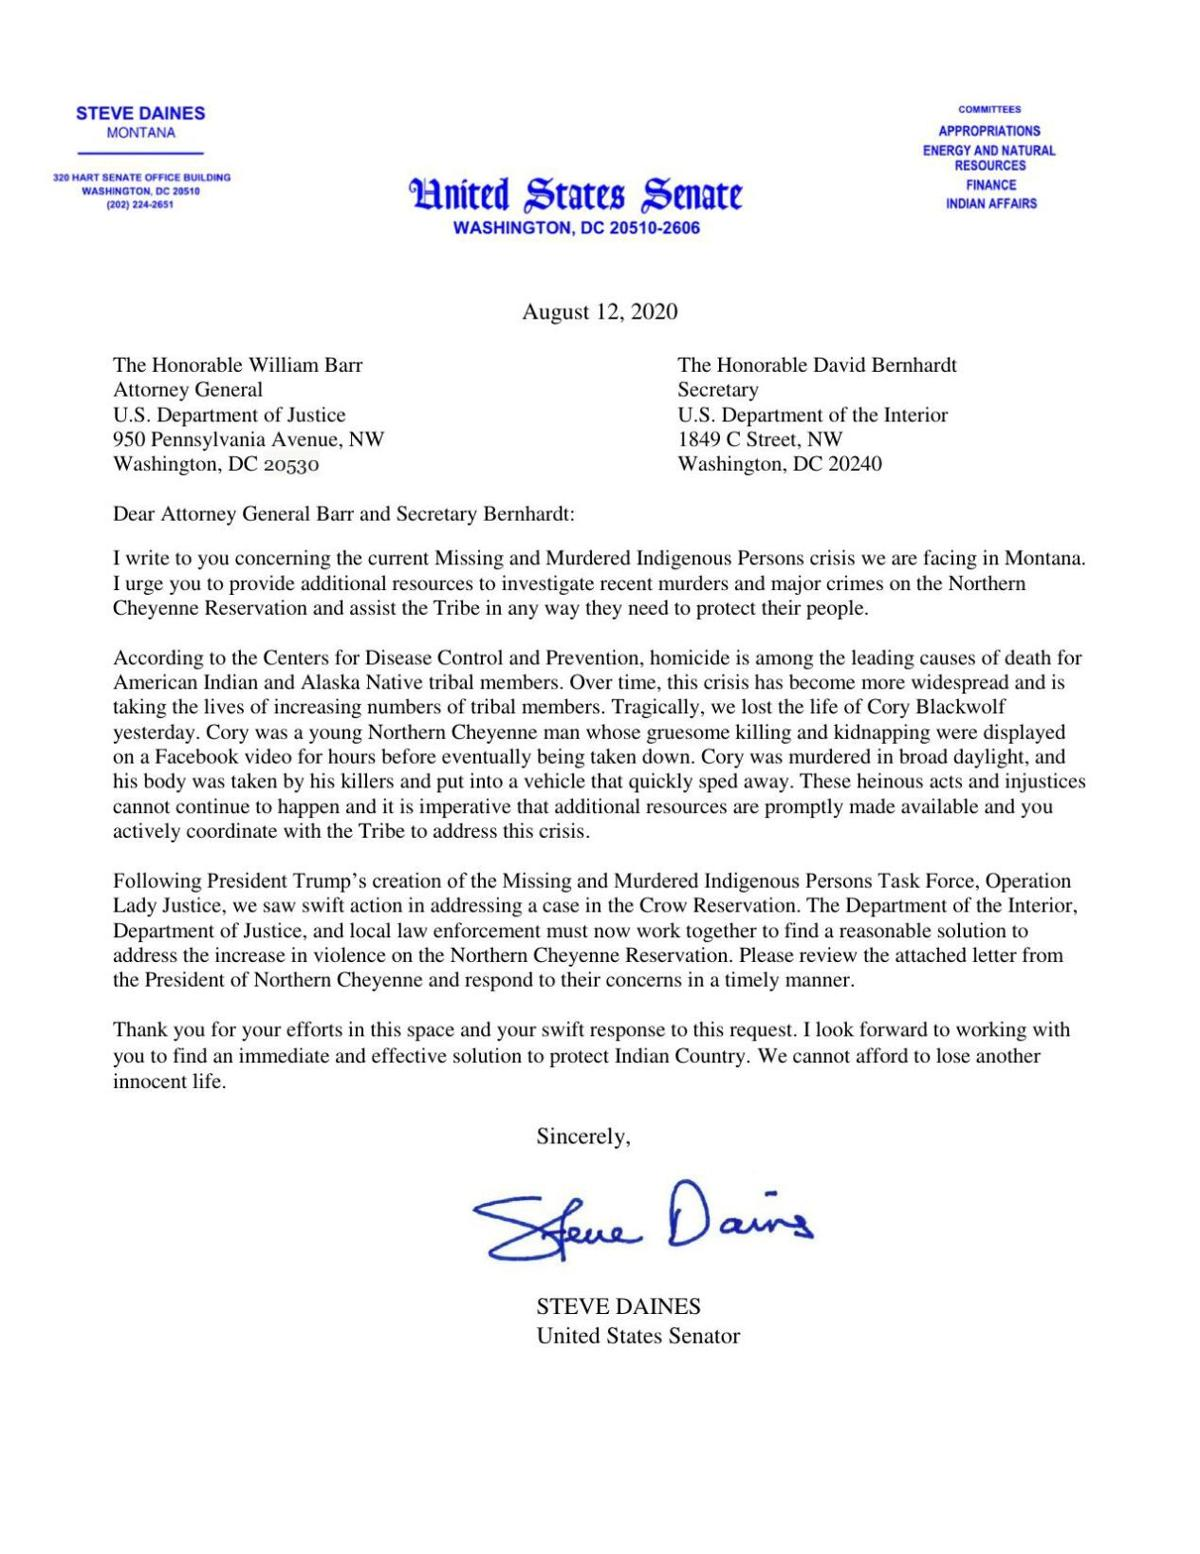 Daines letter to U.S. AG William Barr